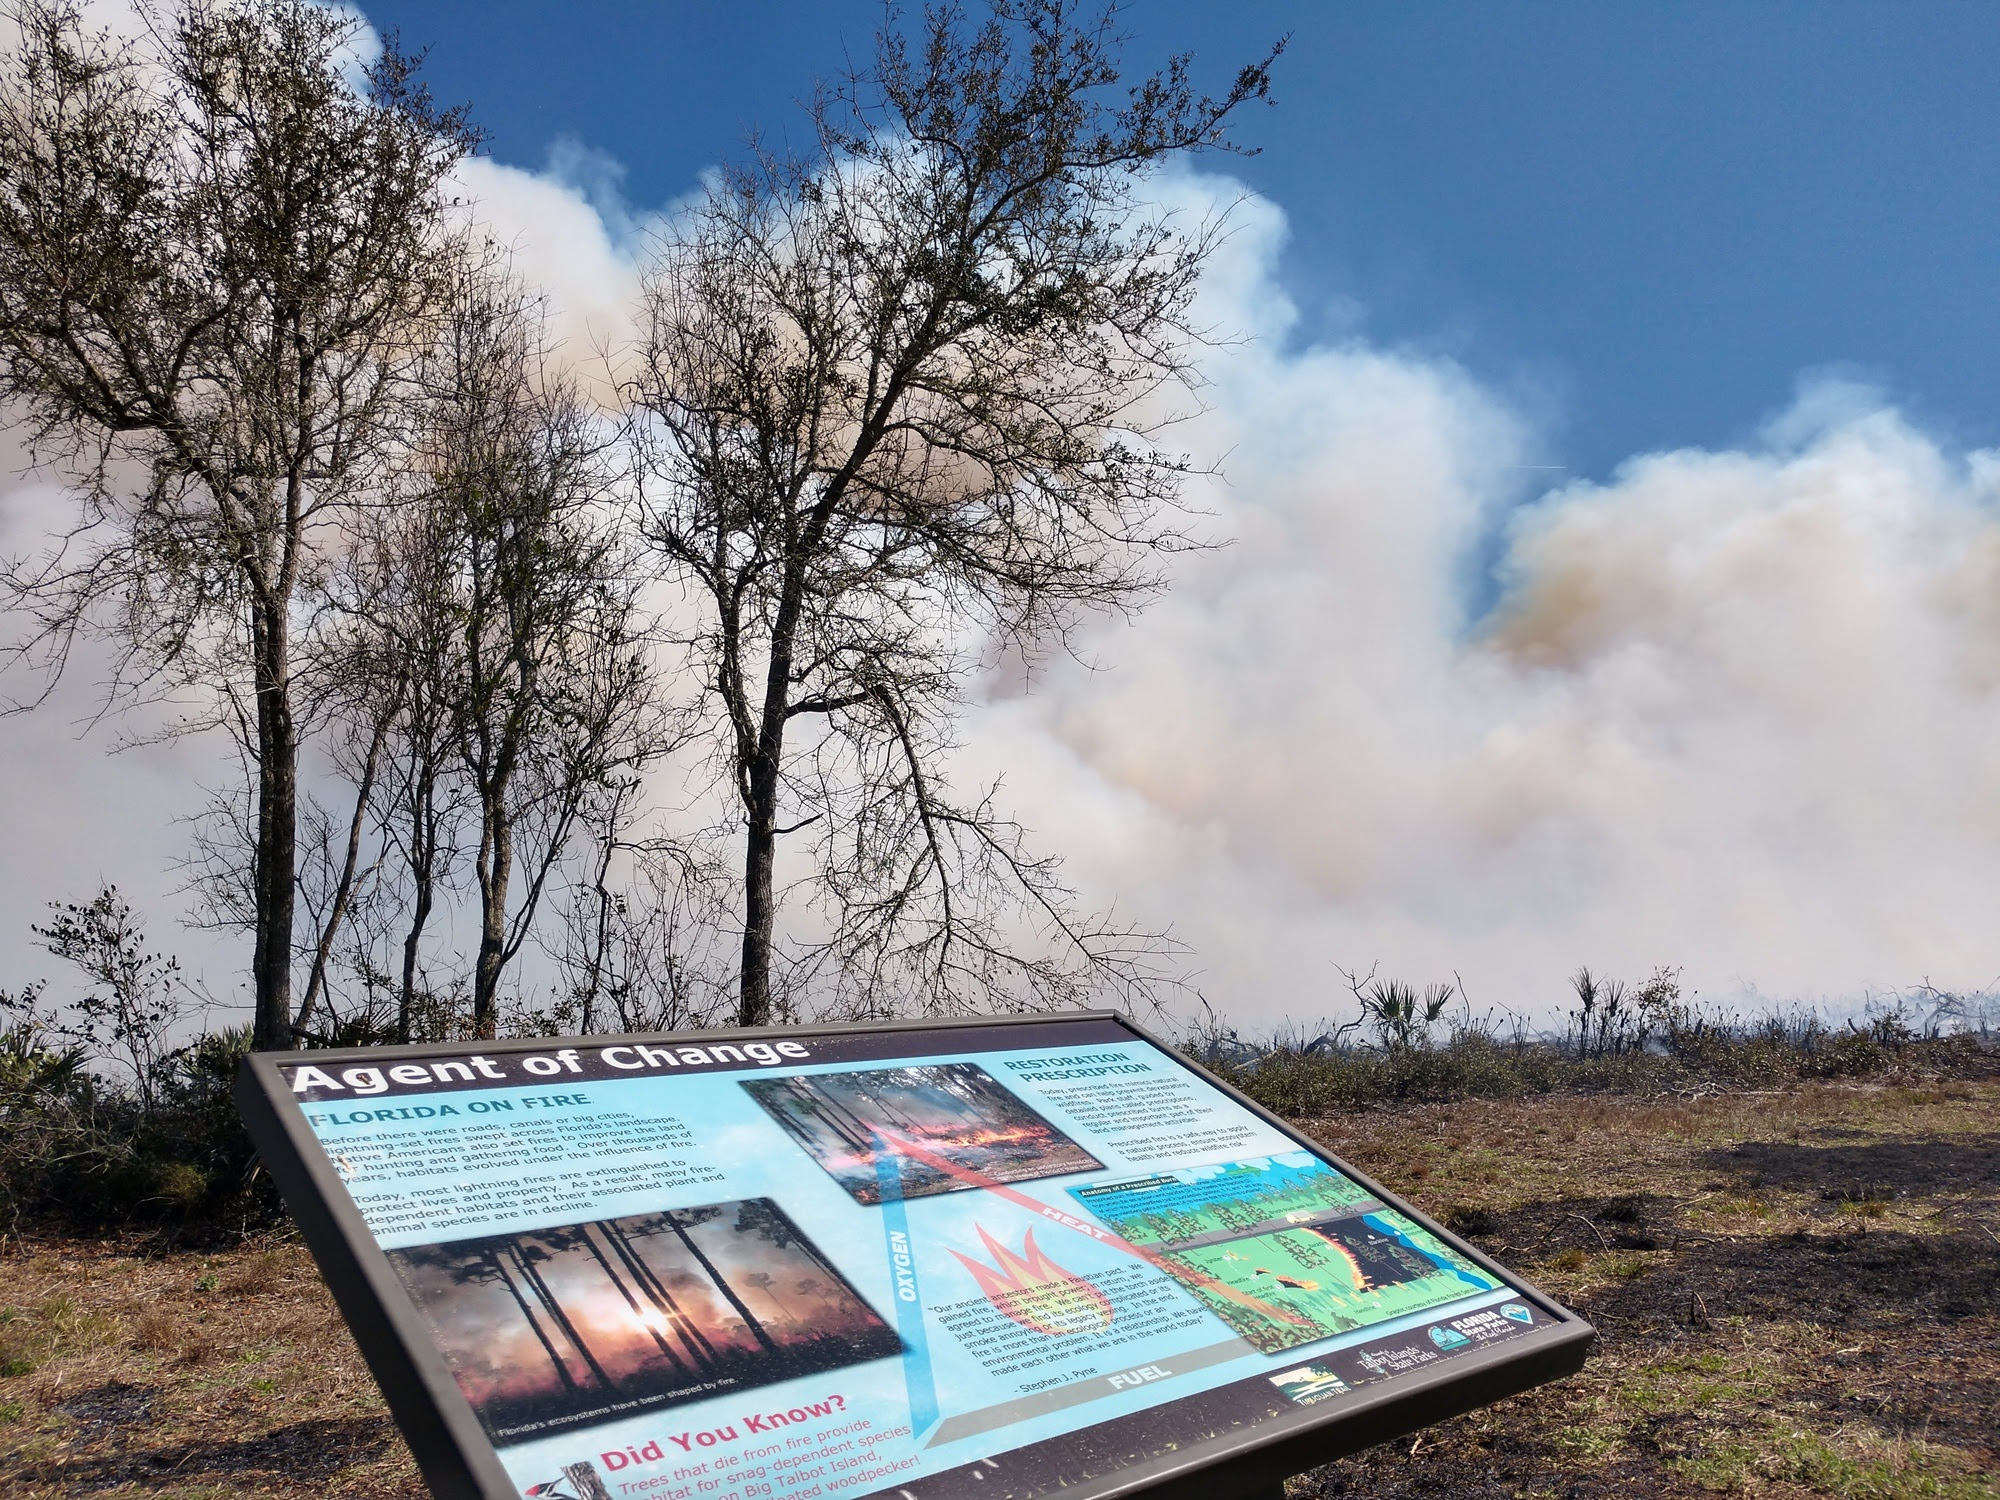 A fire burns at Big Talbot Island in front of an interpretive sign